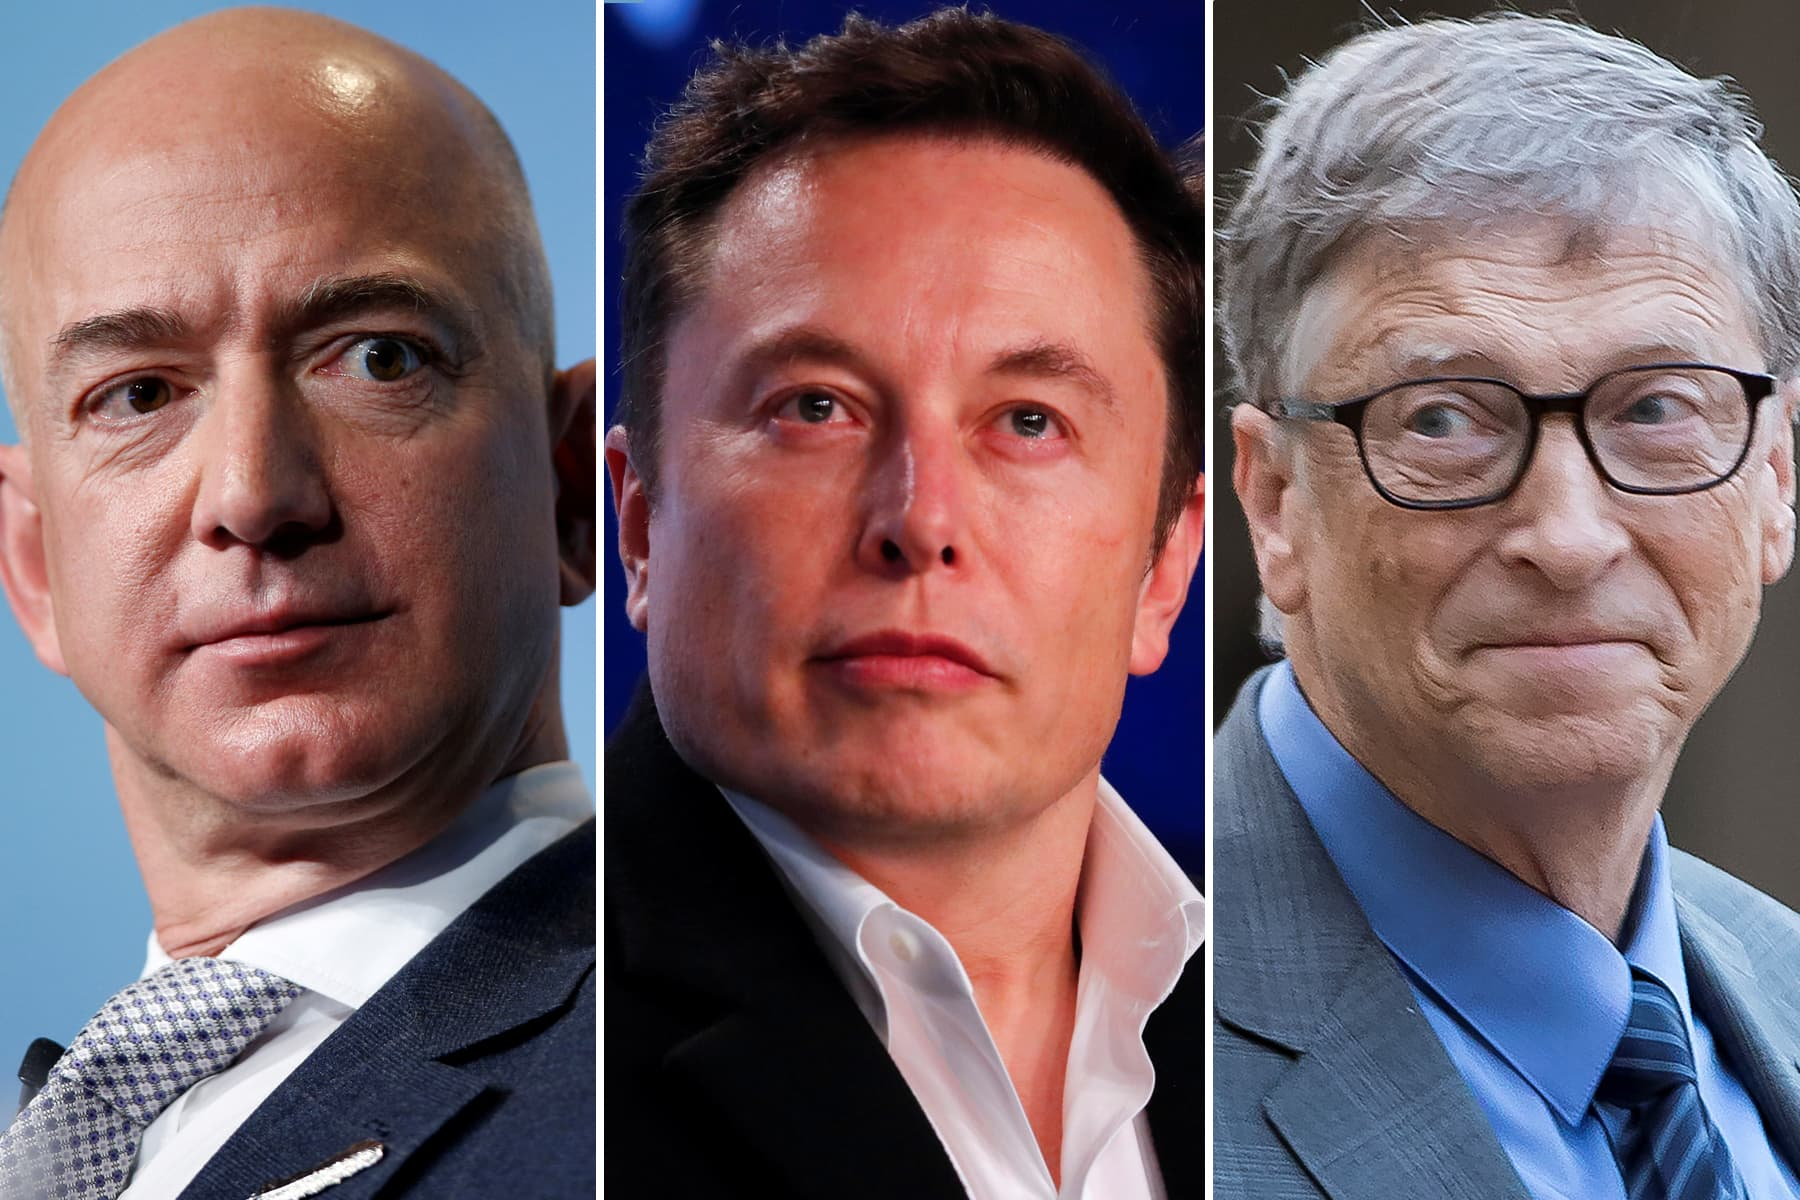 Tech billionaires are obsessed with climate change — but some question if they're focusing on the right areas